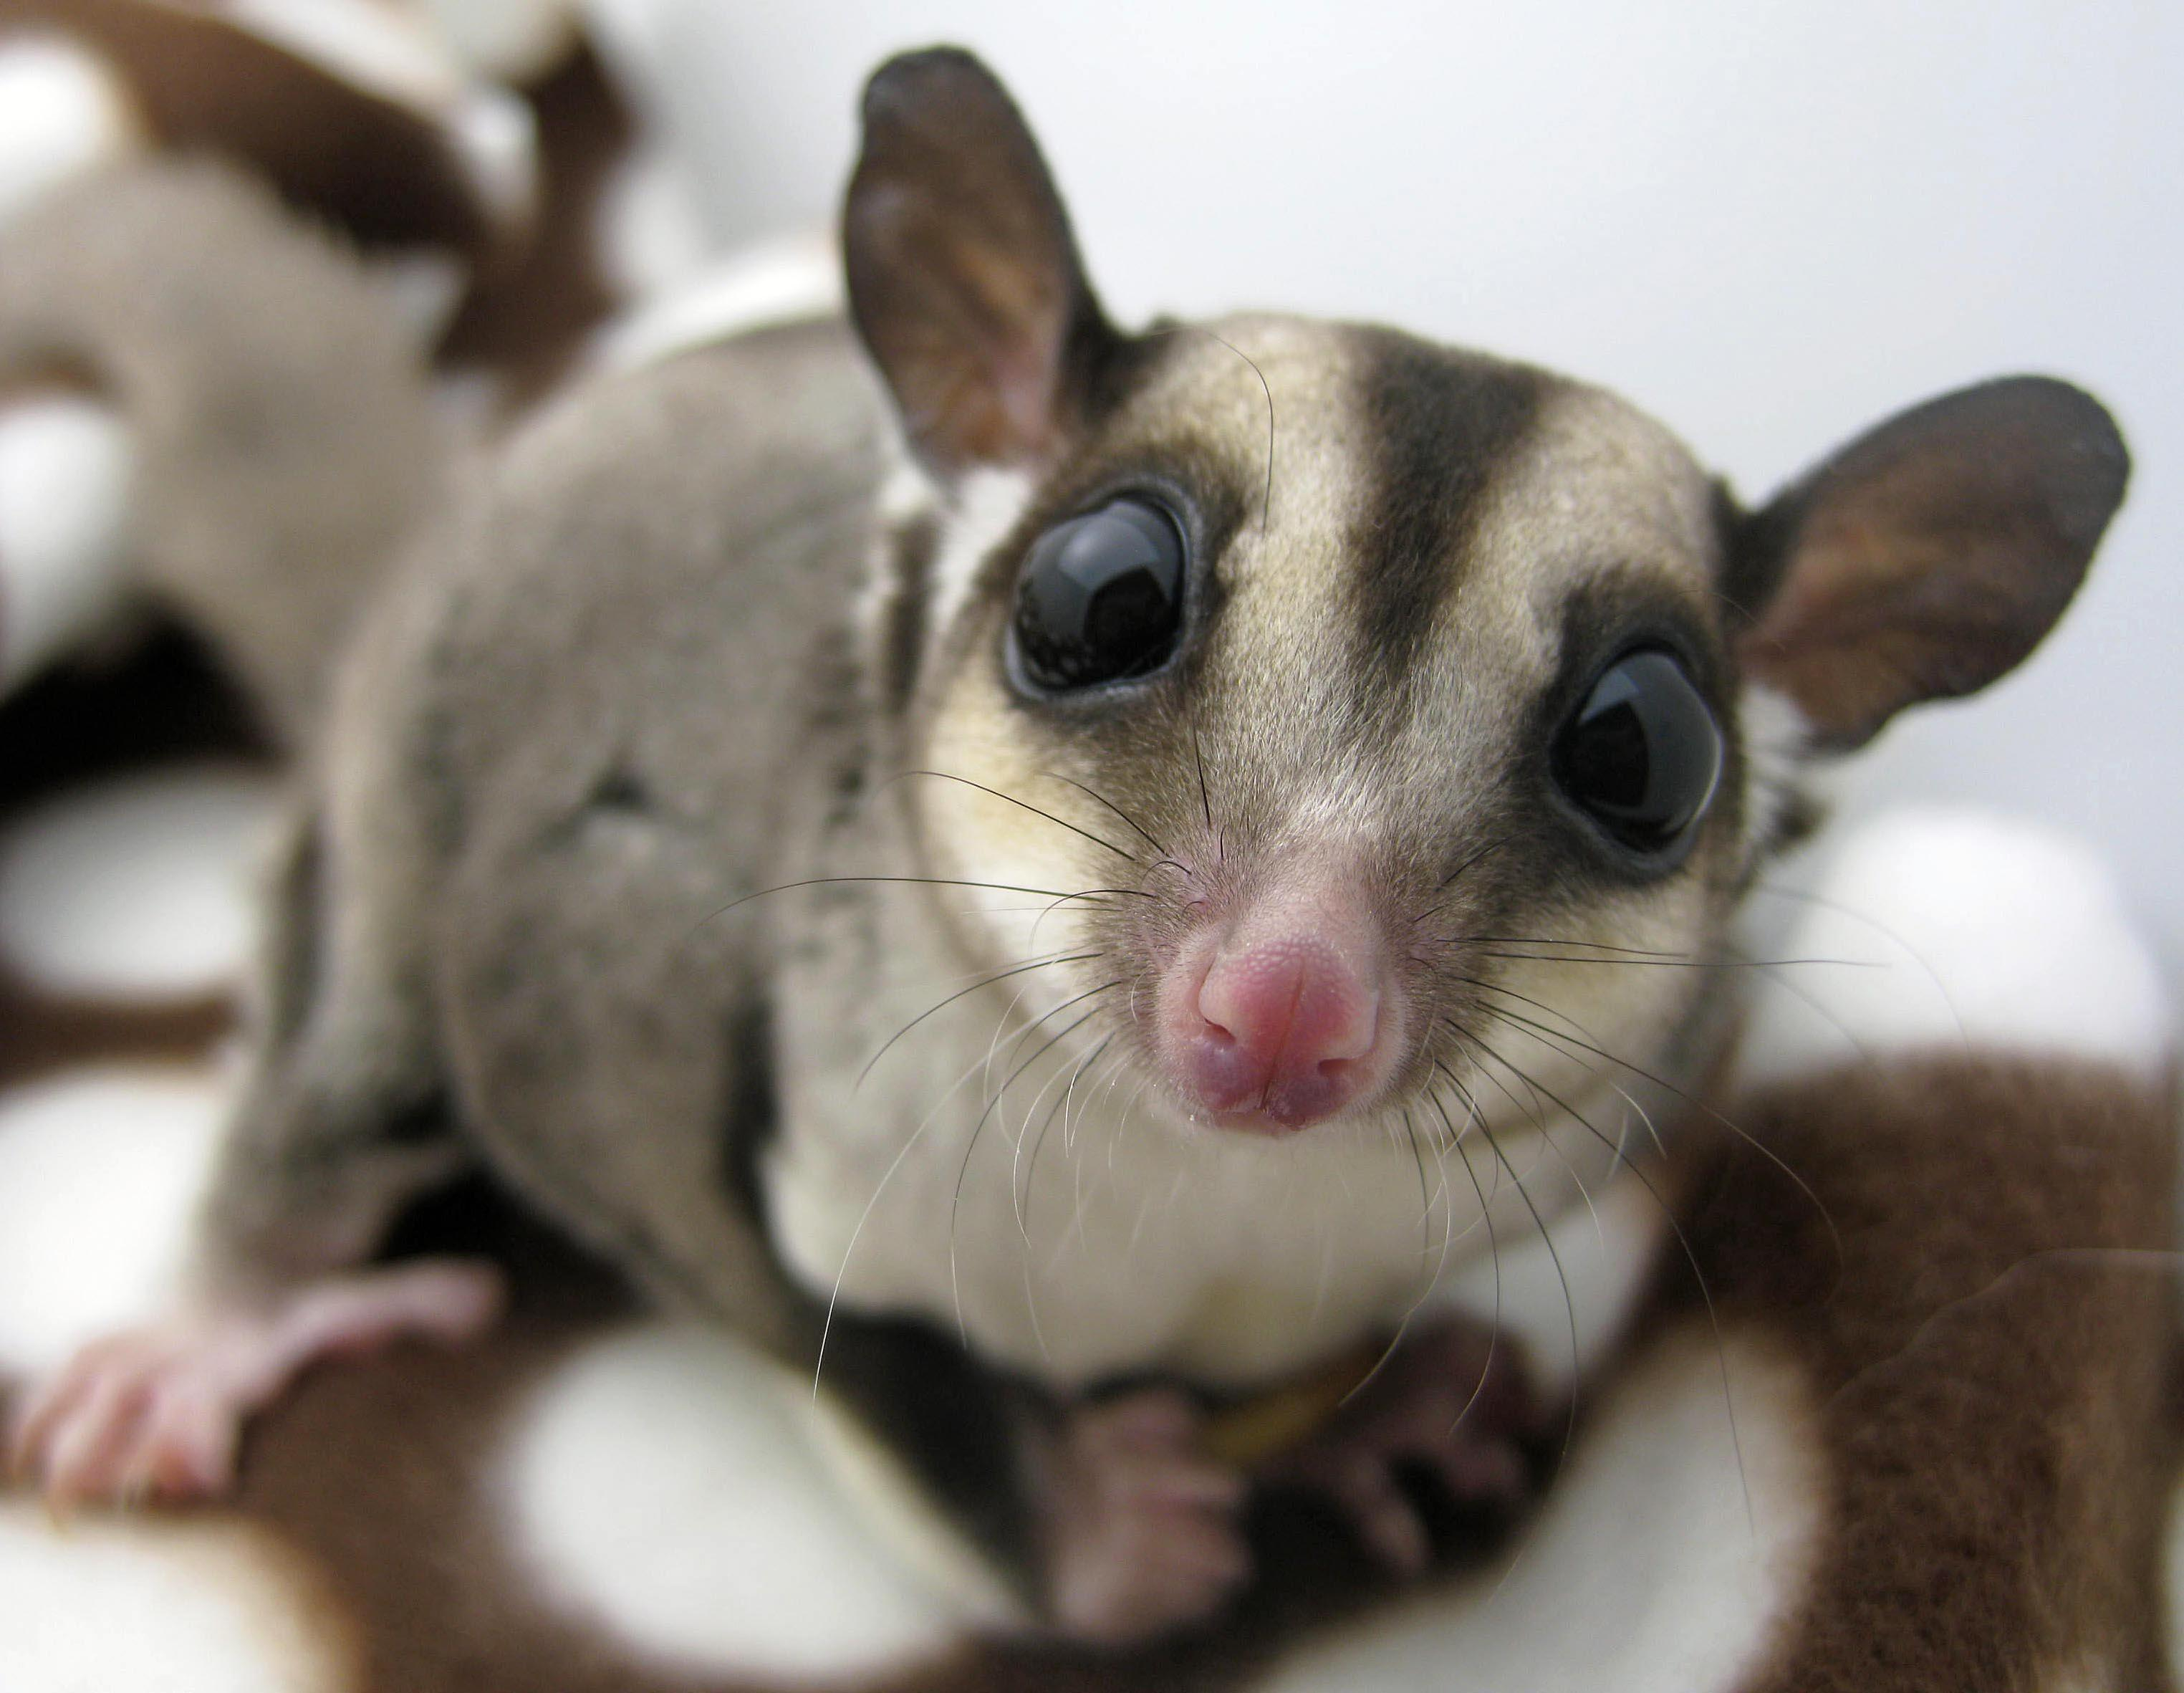 LPC Sugar Gliders: Sounds